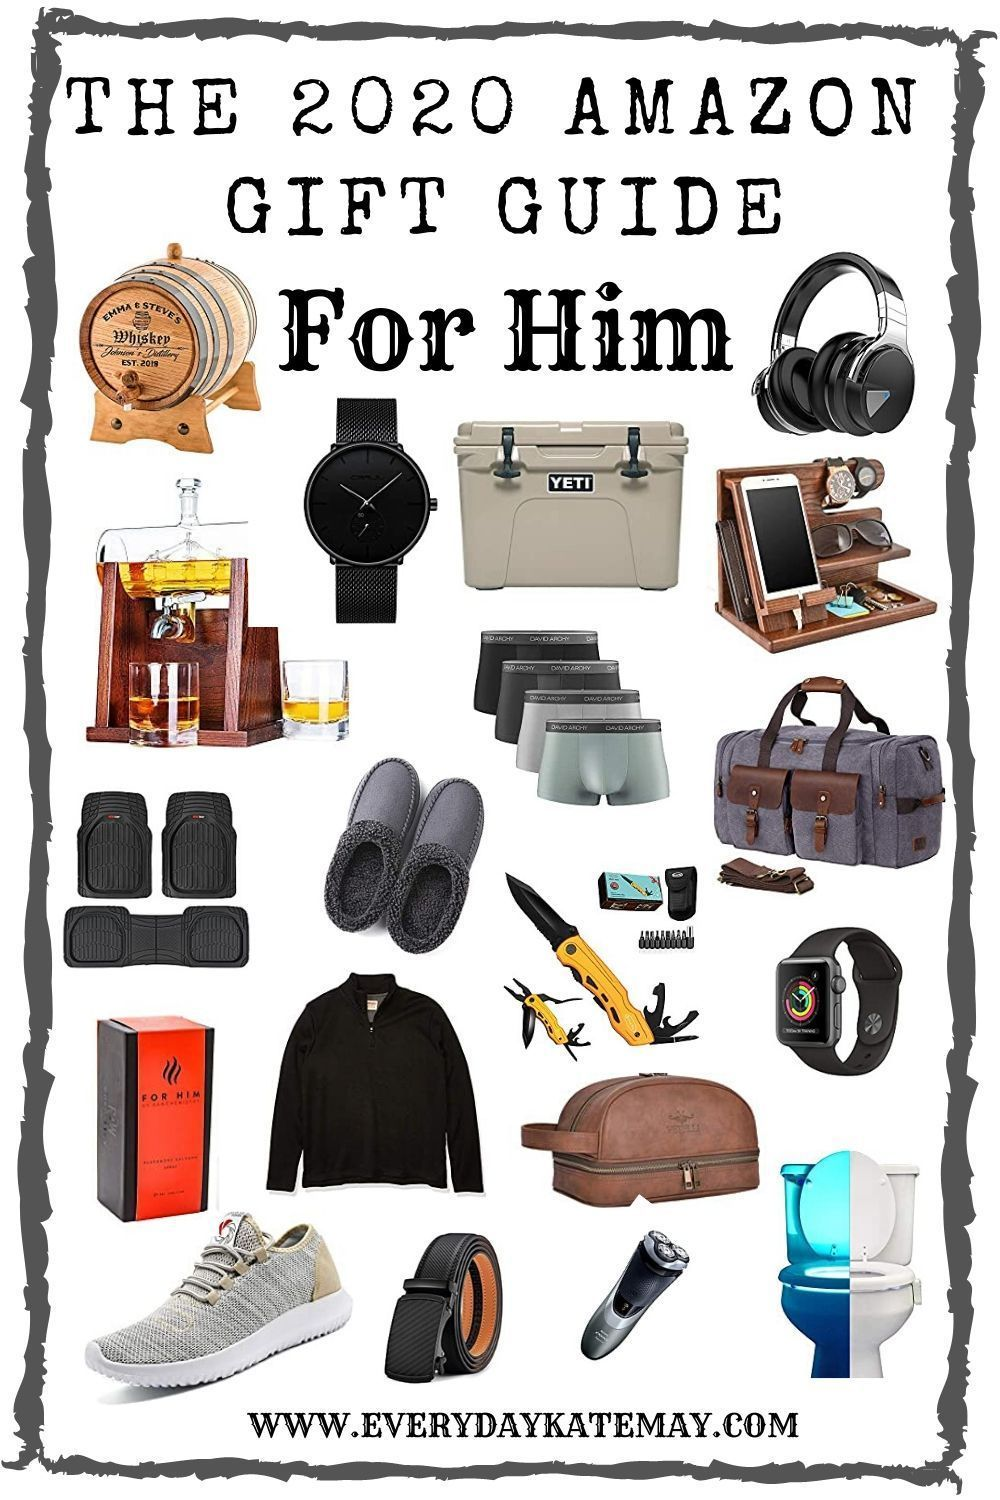 The Arh For Christmas 2020 The 2020 Amazon Gift Guide for Him in 2020   Amazon gifts, Gift